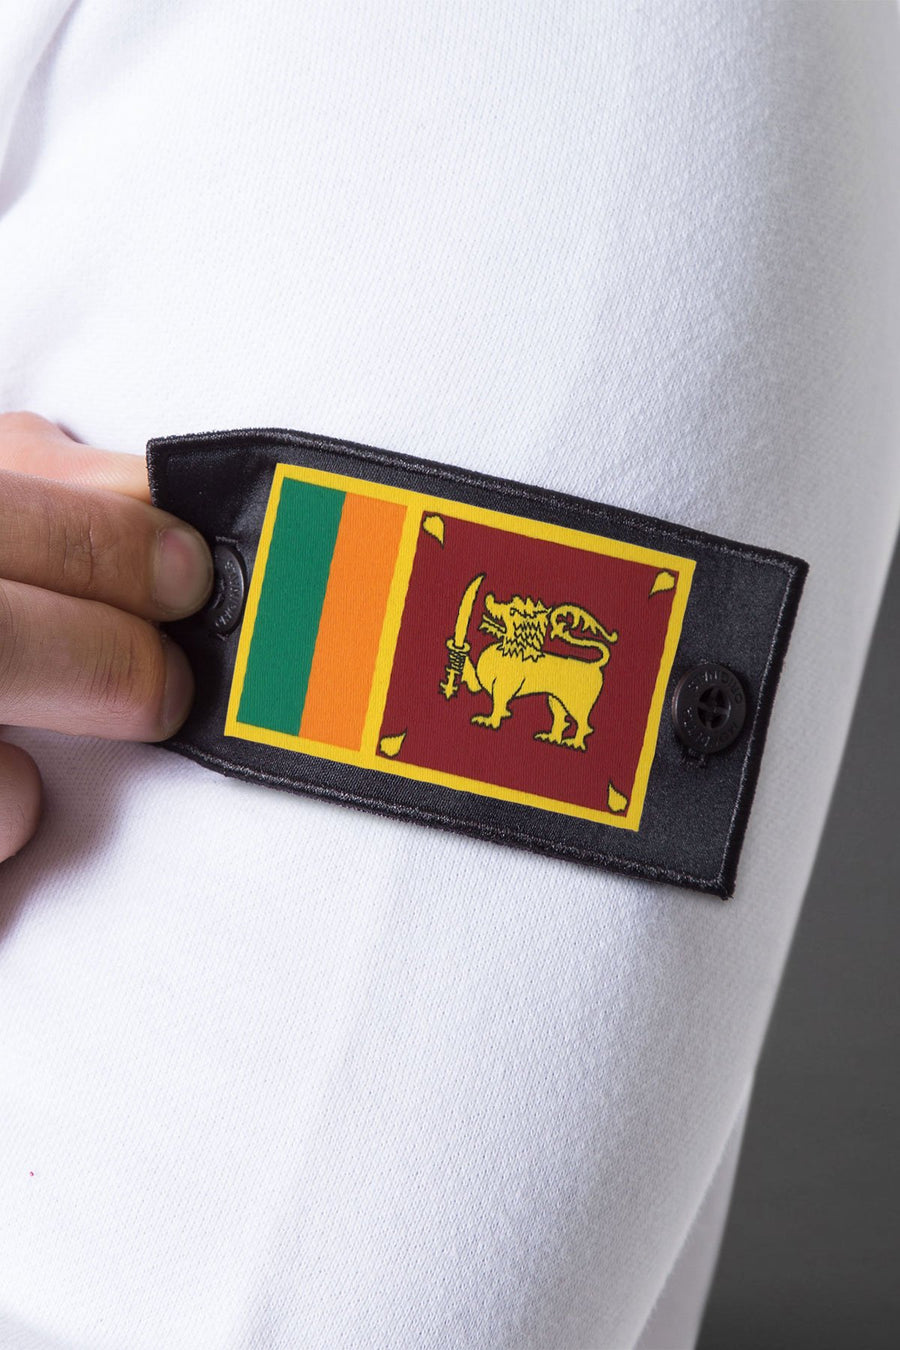 Sri Lanka Patch